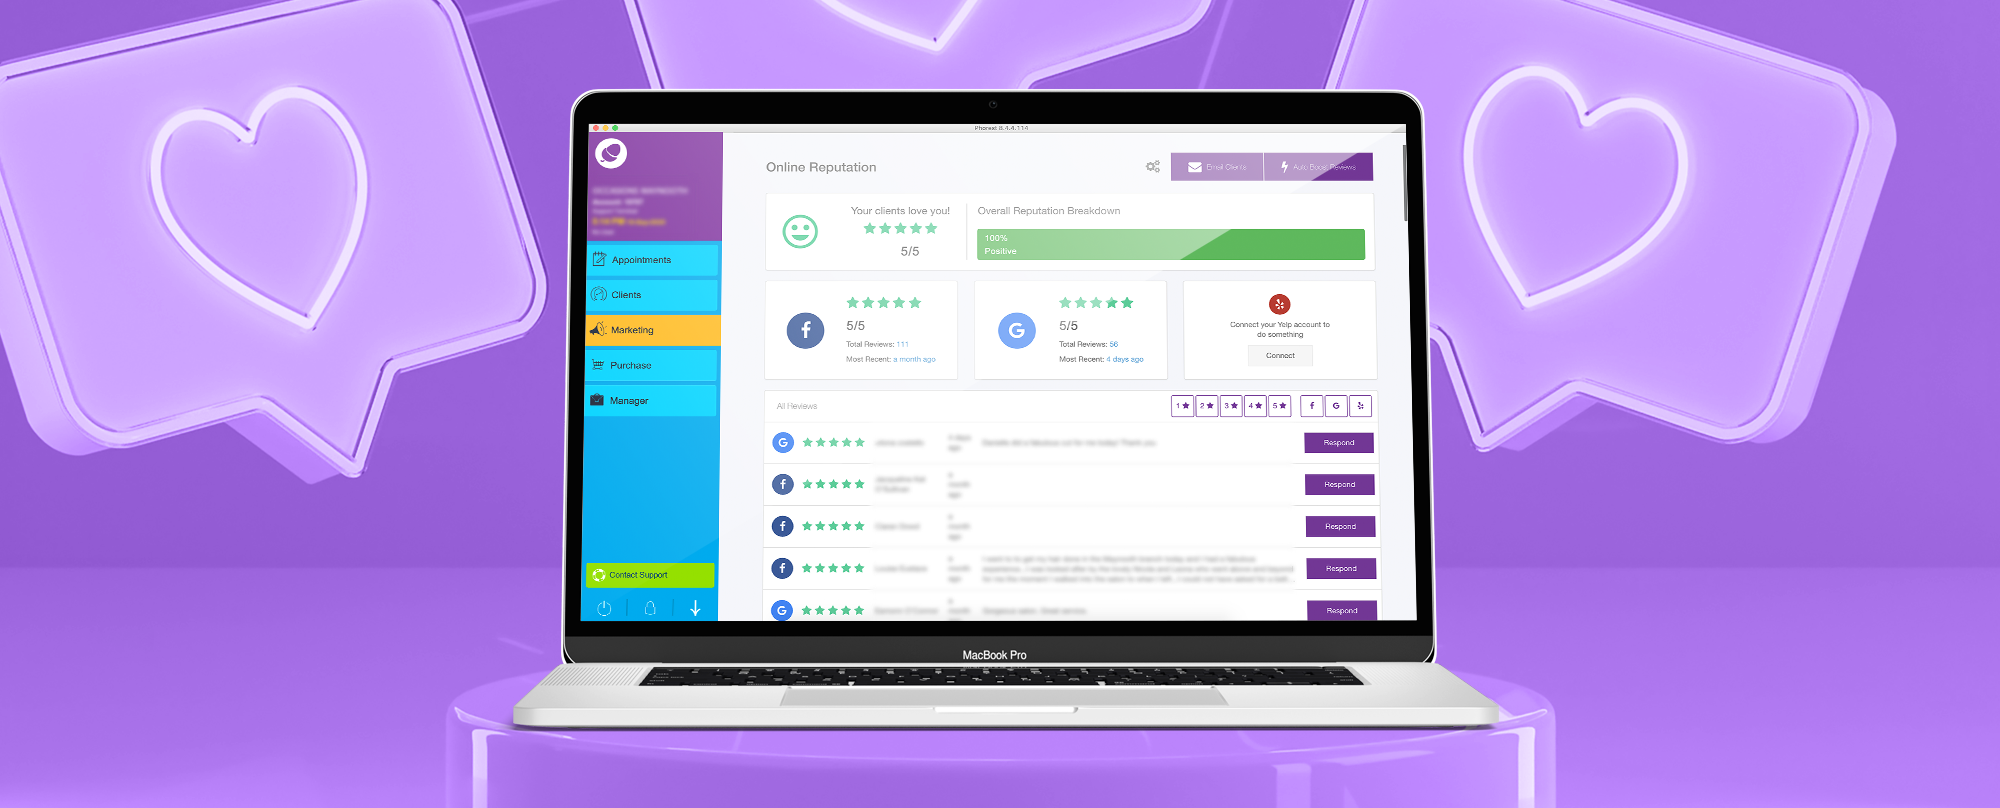 Earn Award-Worthy Reviews with Phorest's Online Reputation Manager